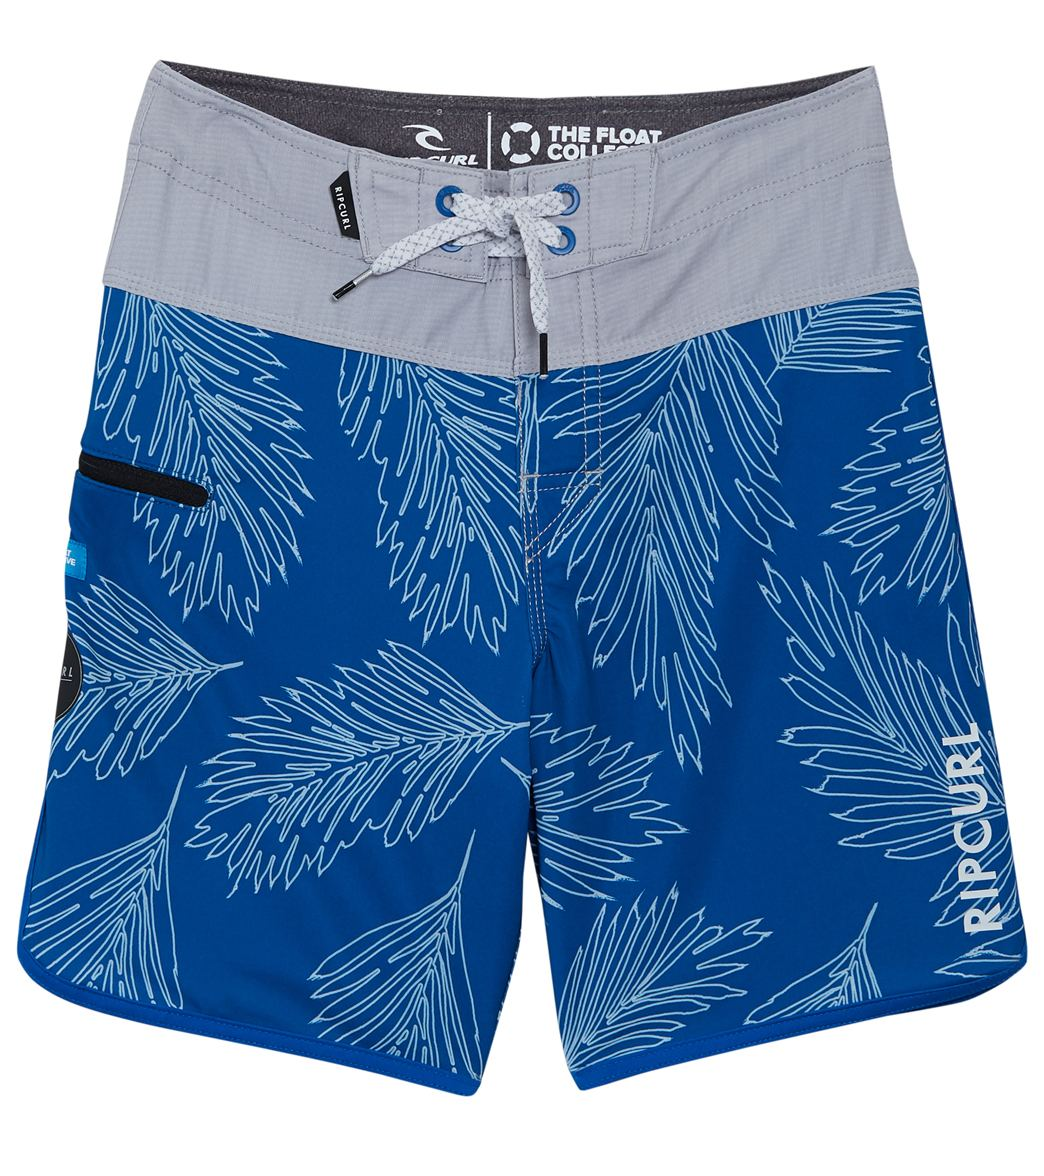 908e28f73a45 Rip Curl Boys  Mirage Mason Rockies Boardshort (Big Kid) at SwimOutlet.com  - Free Shipping